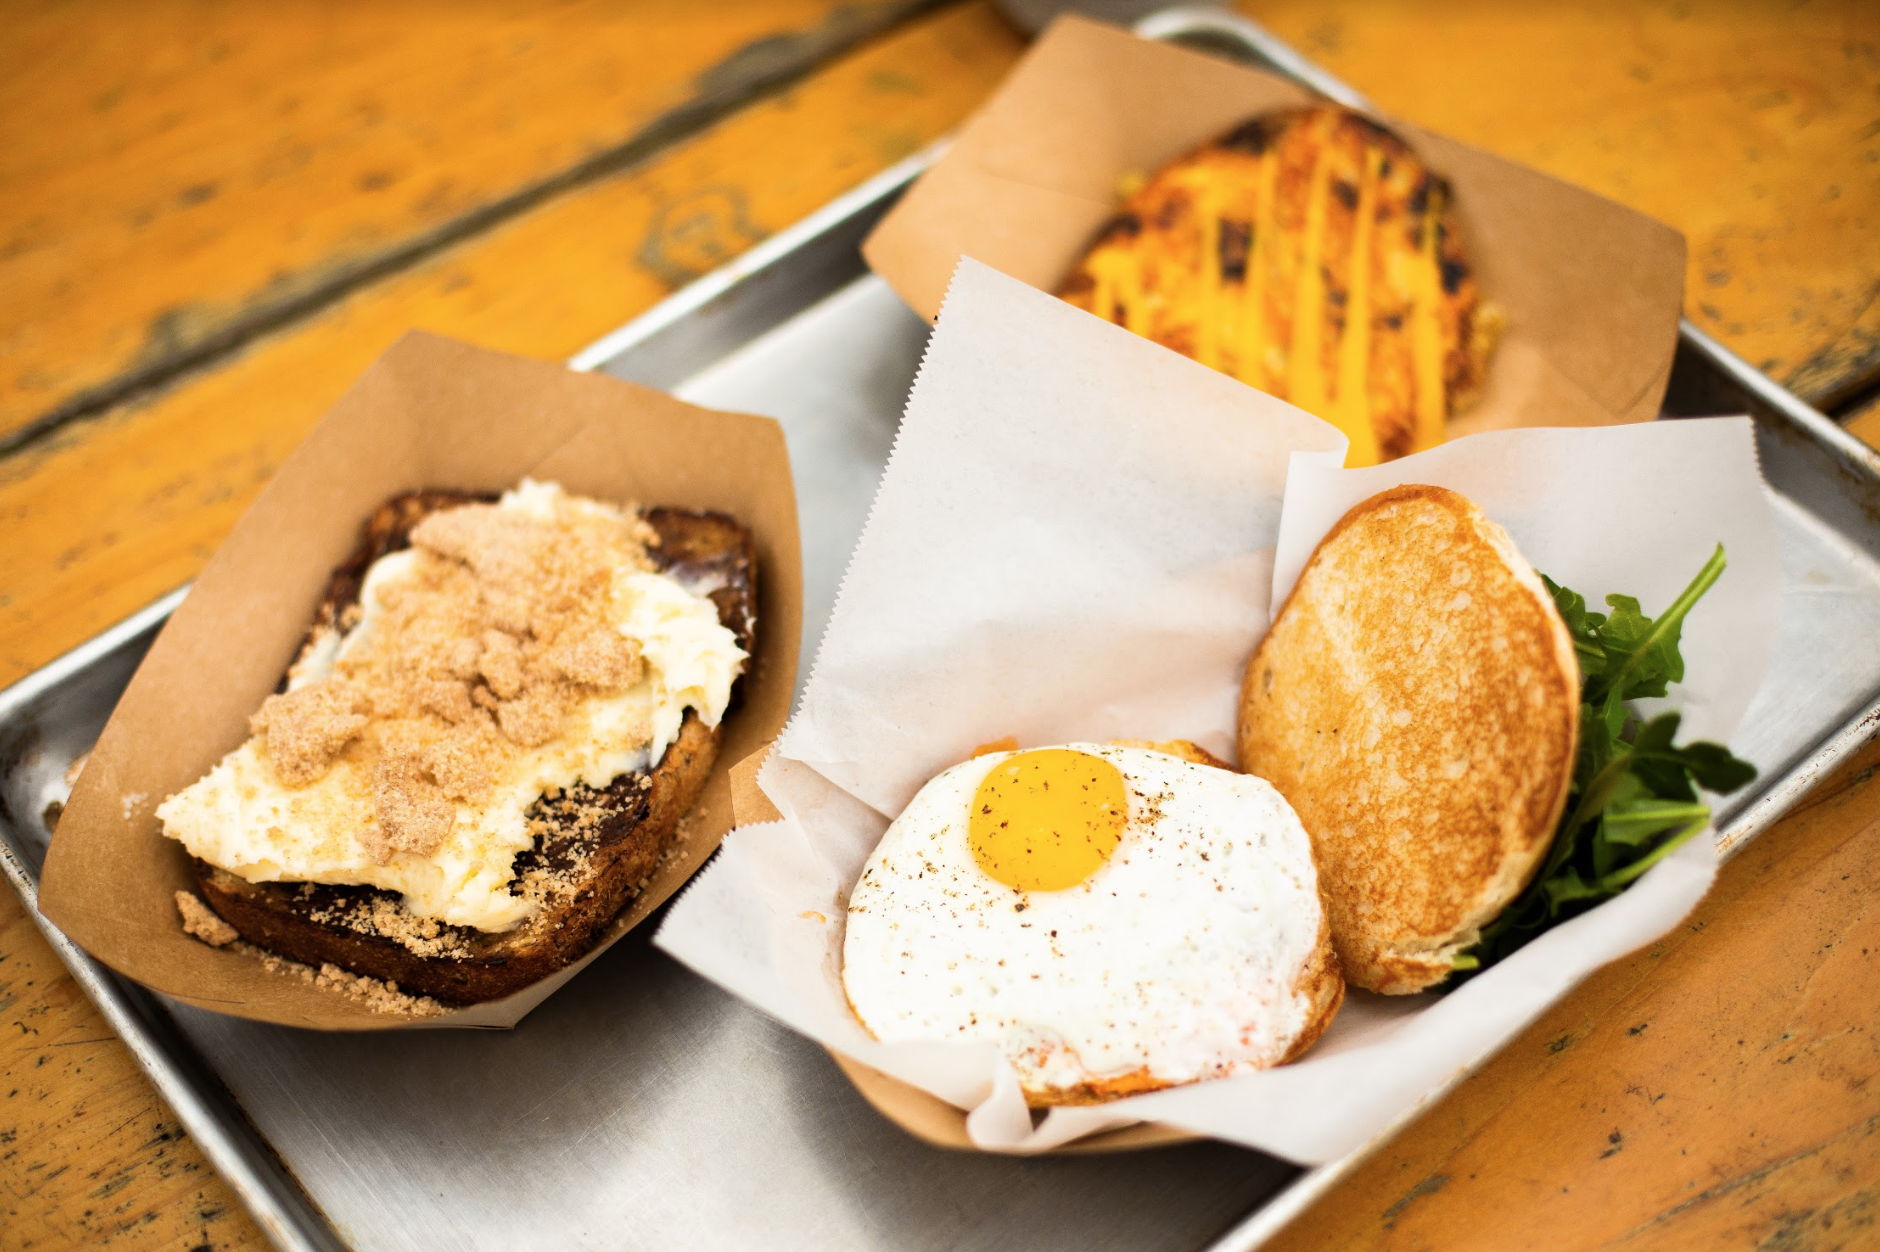 From left to right: Cinnamon Toast, the B.E.C, and a Crispy Cheddar Hashbrown.